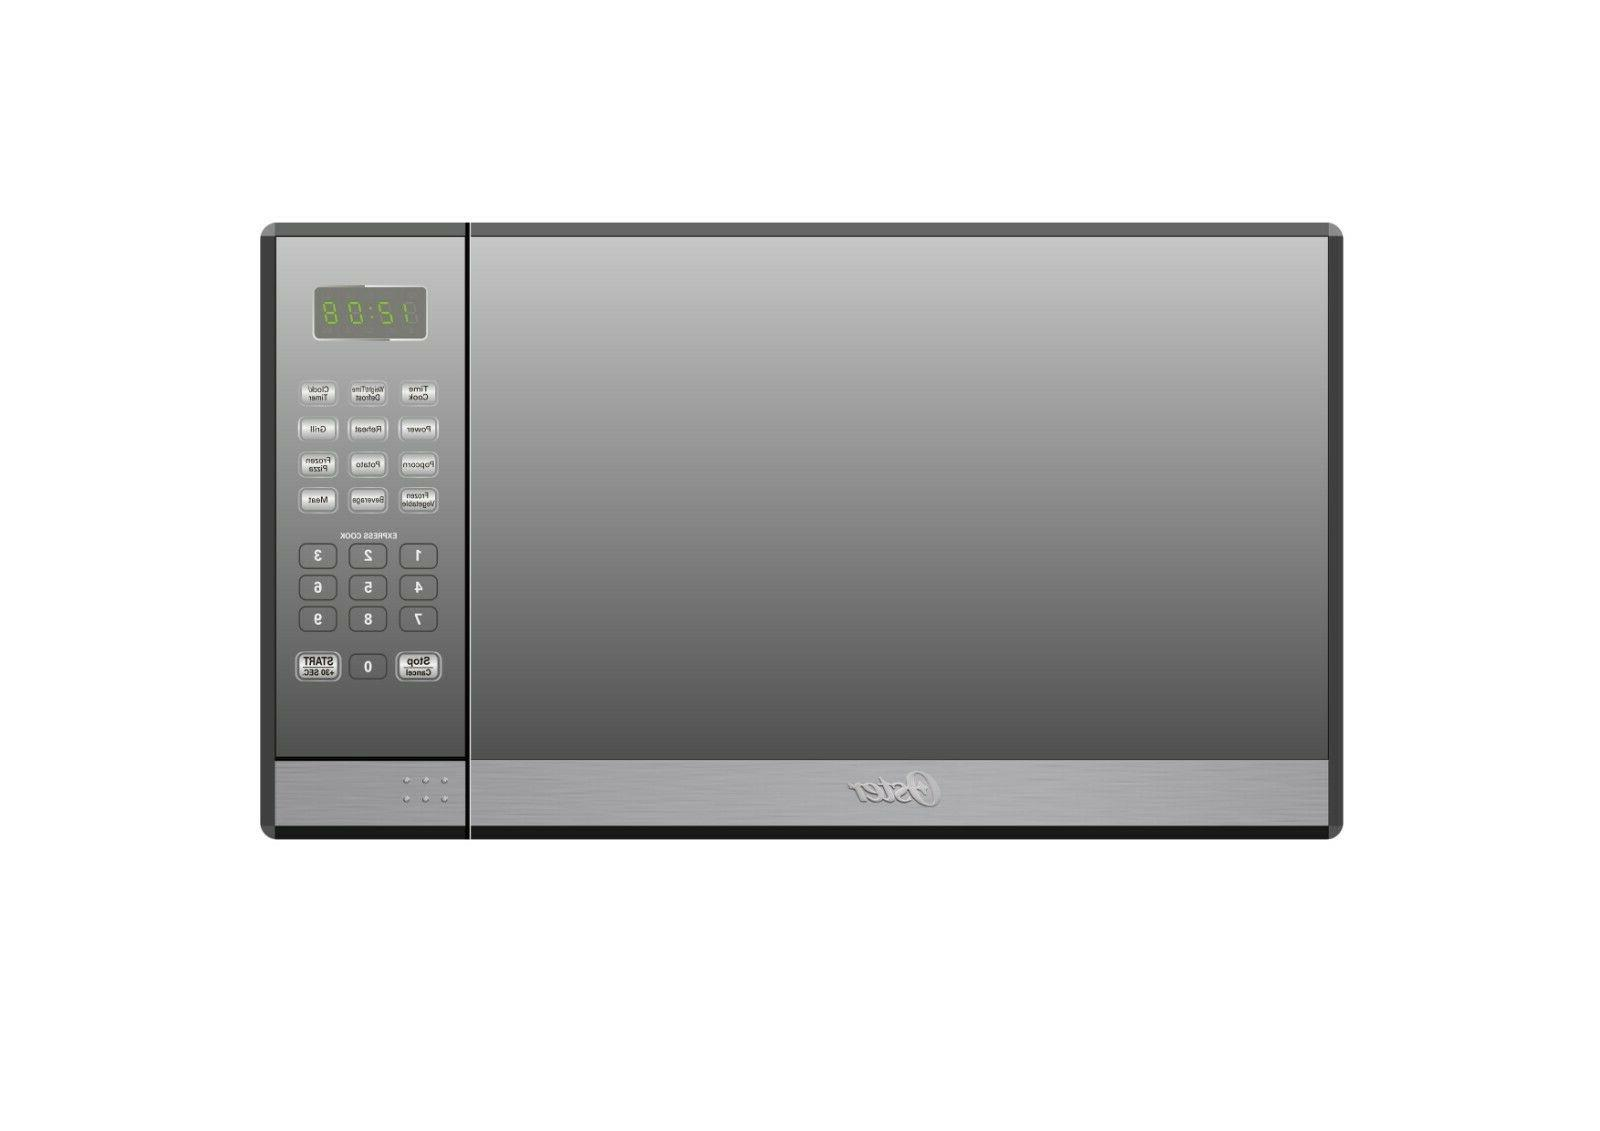 Oster Stainless Finish Microwave Oven Grill